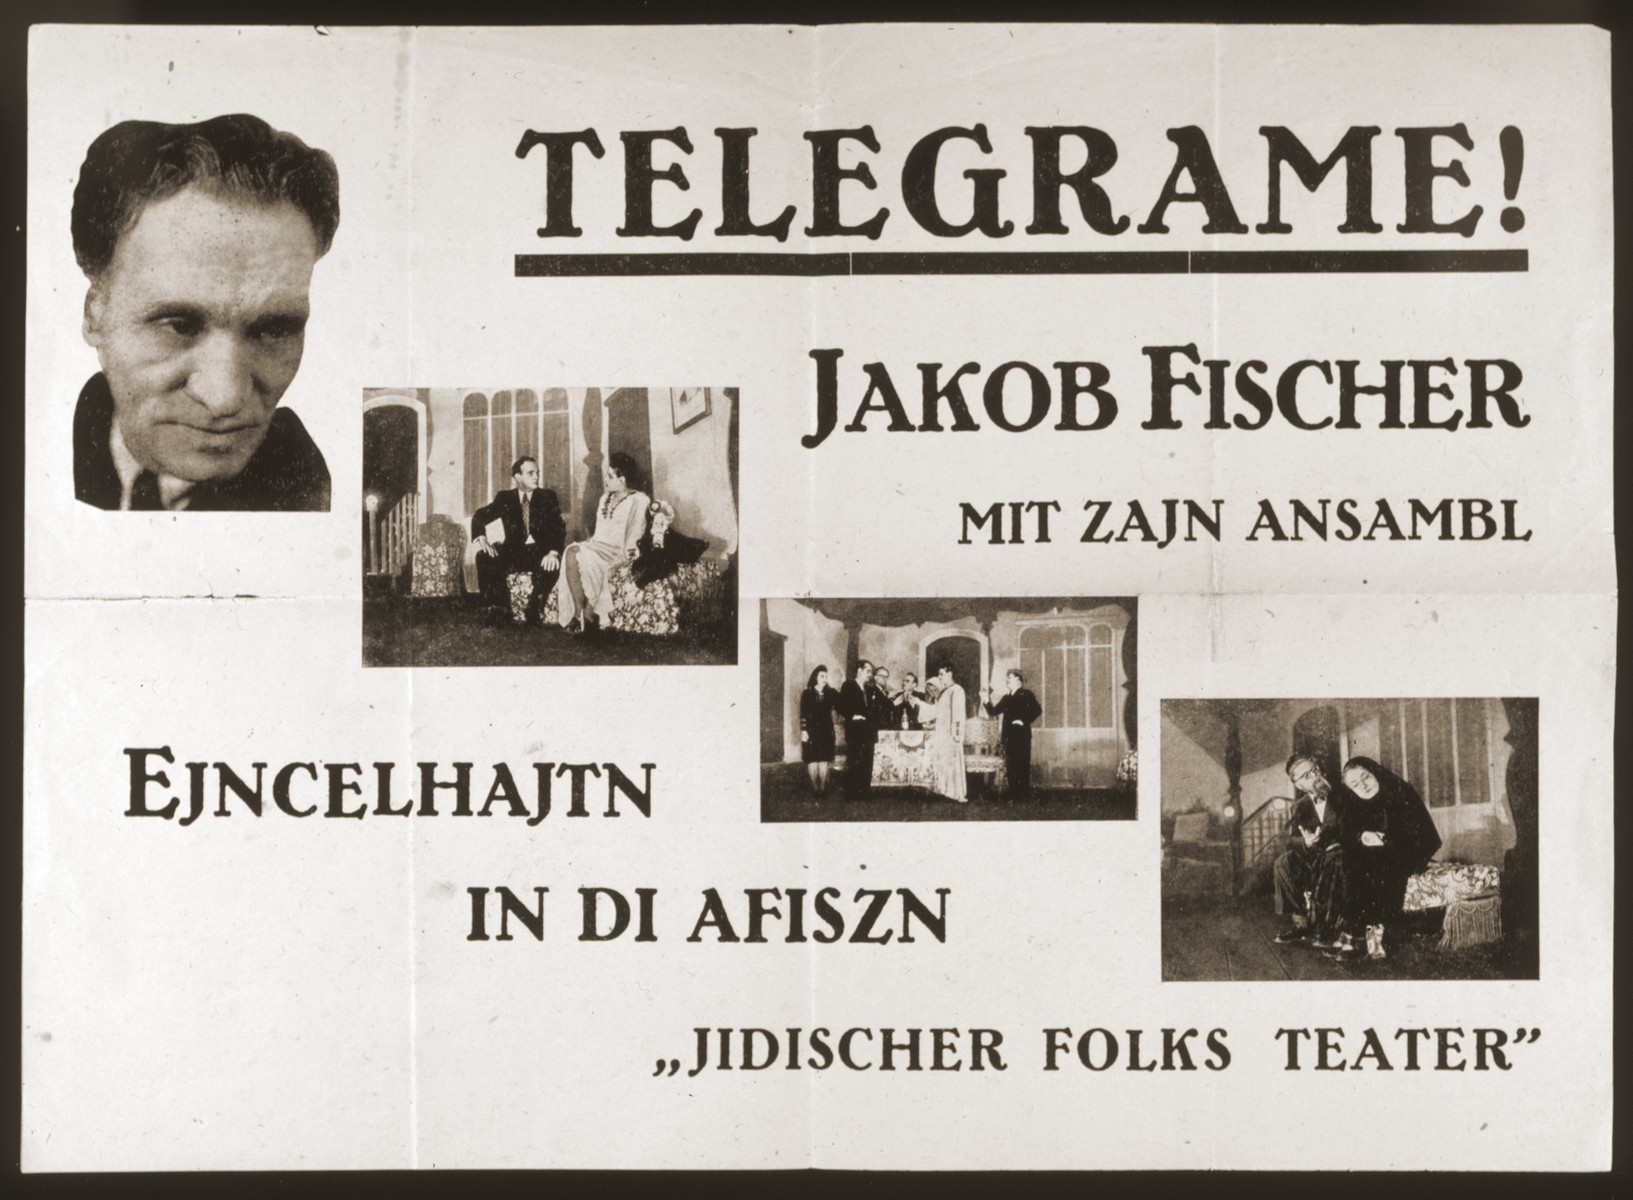 """Poster advertising the play """"Telegrame!"""" at the Jidischer Folks Teater.  The production stars Jakob Fischer and his ensemble.  Theatrical troupes revived the works of the prewar Yiddish stage during the postwar DP period from 1945-1951."""